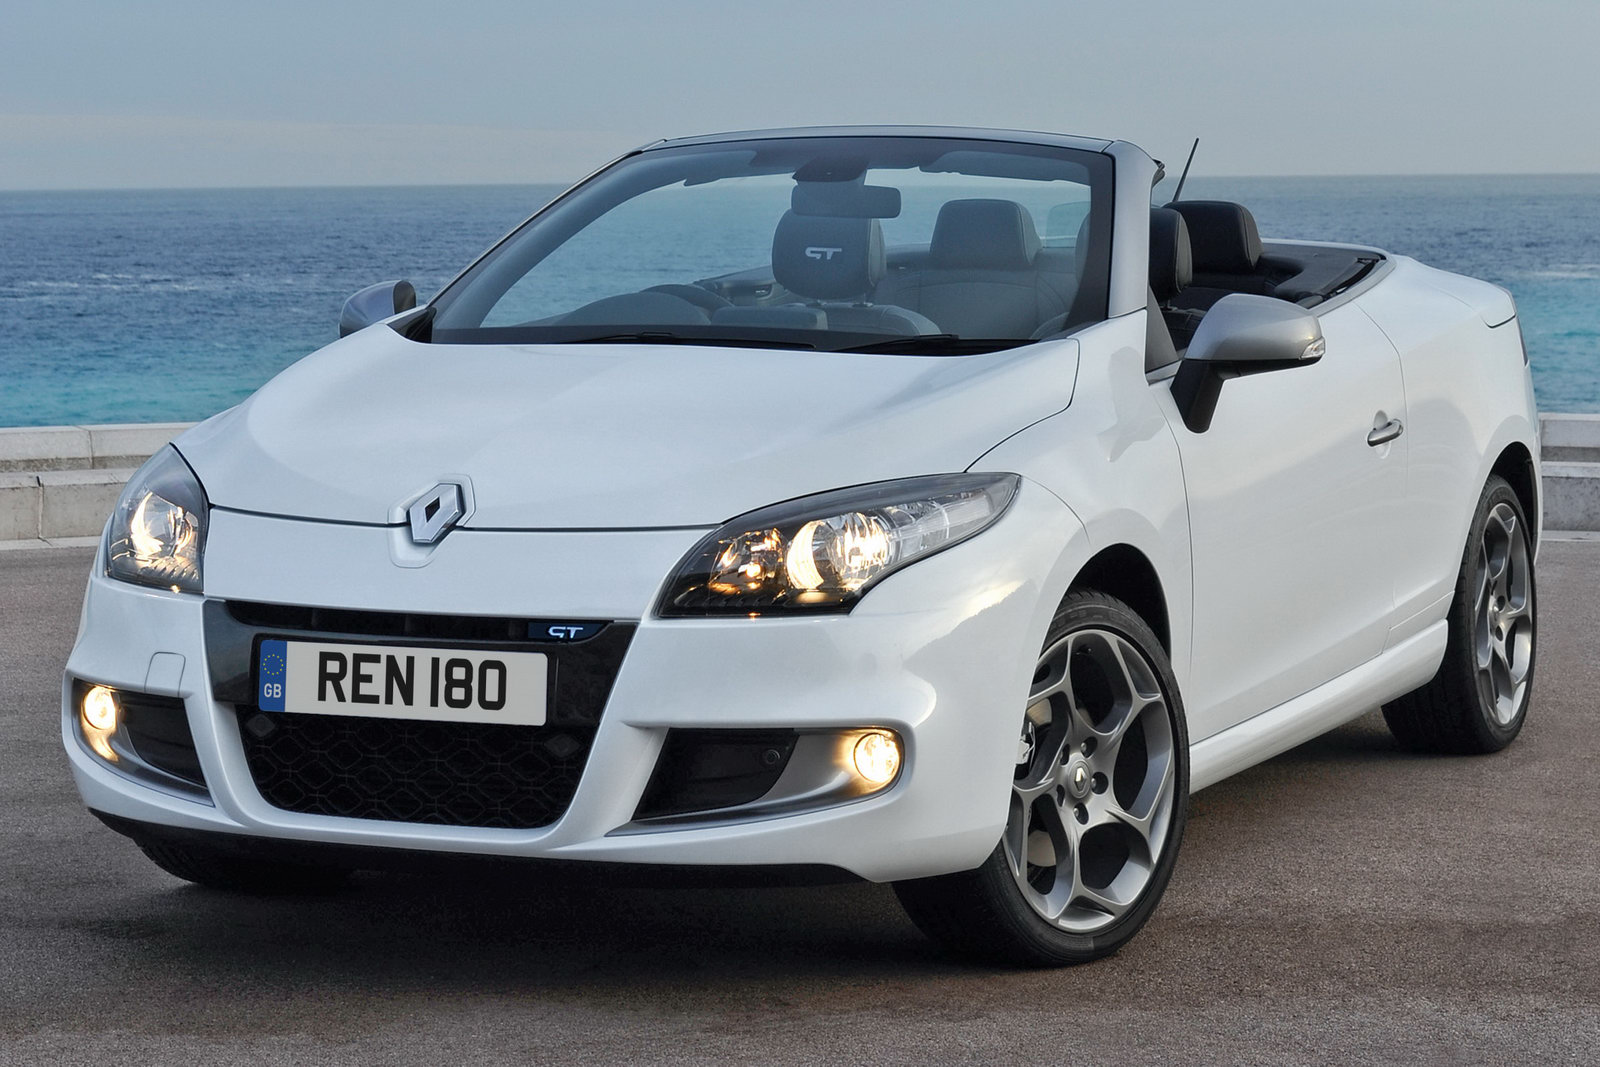 New Renault M 233 Gane Coup 233 Cabriolet To Hit Uk Showrooms In July